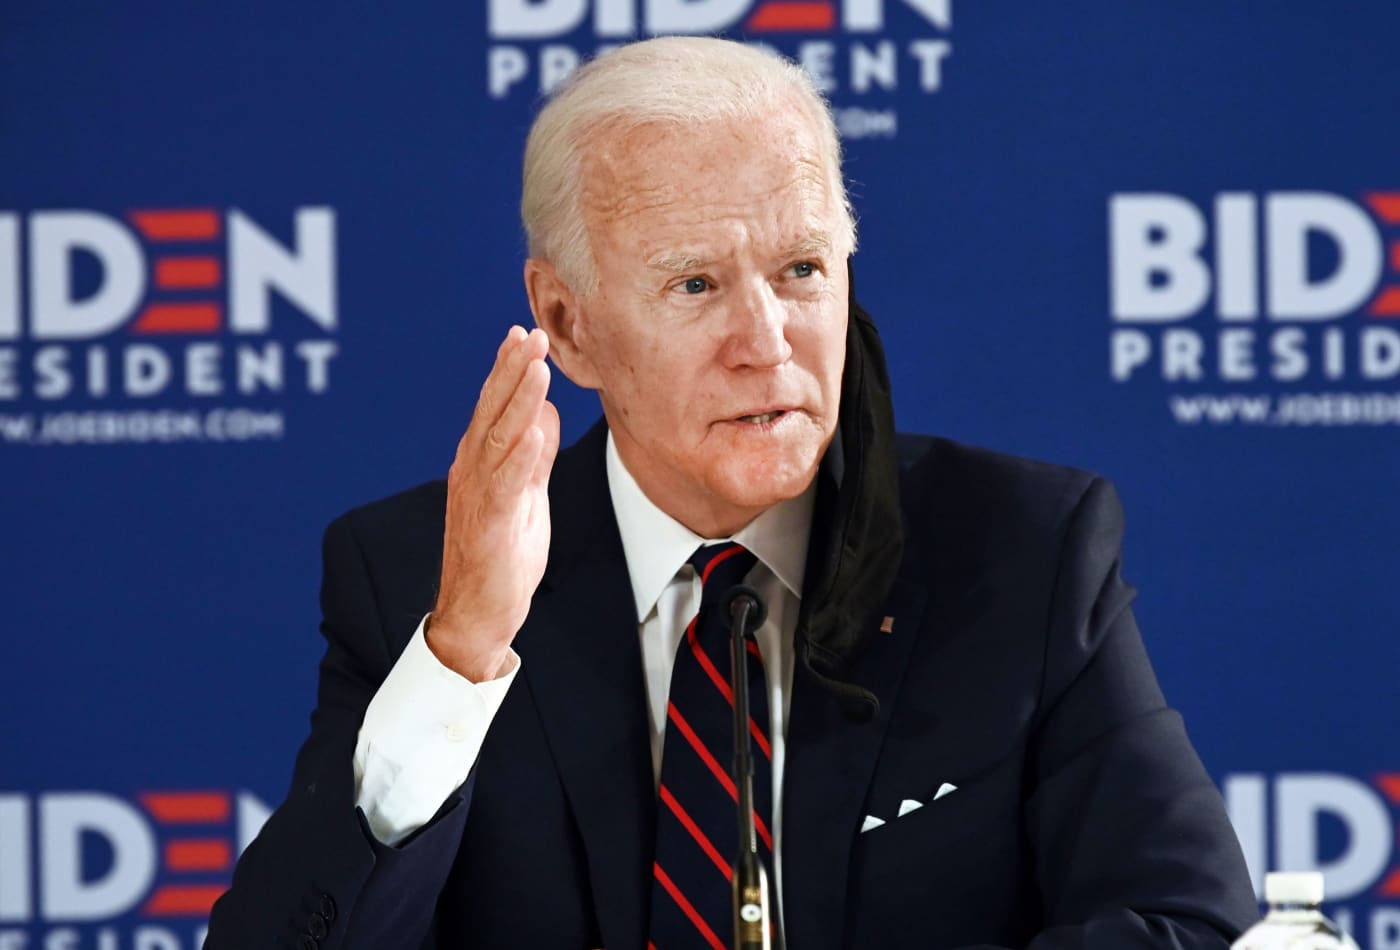 Biden slams Trump over report Russia offered bounties for Afghan militants to kill U.S. soldiers